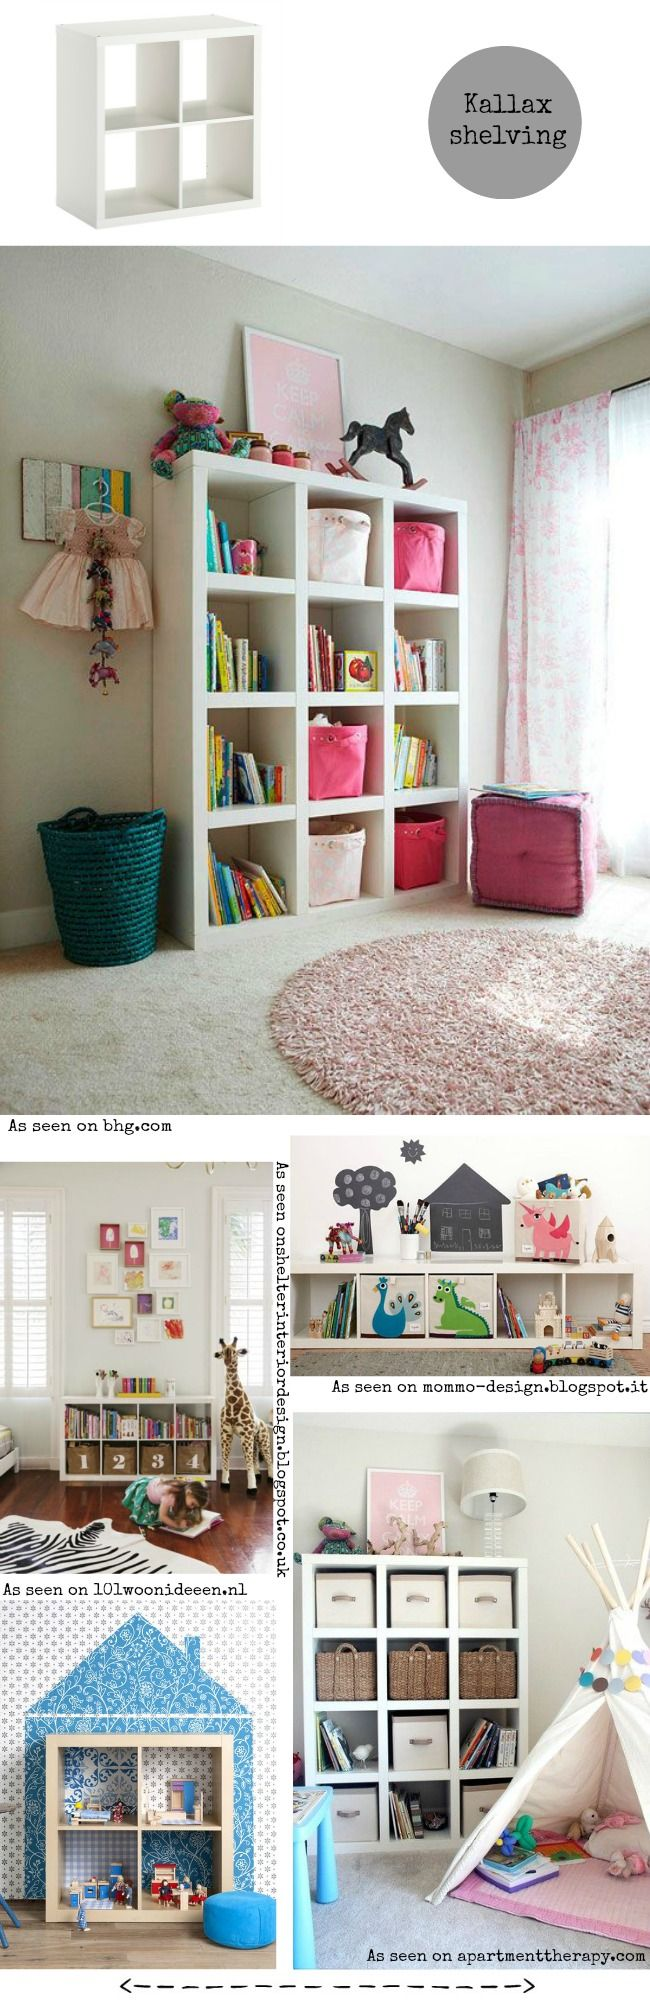 The 25 best ideas about ikea kallax shelf on pinterest for Decoration kallax